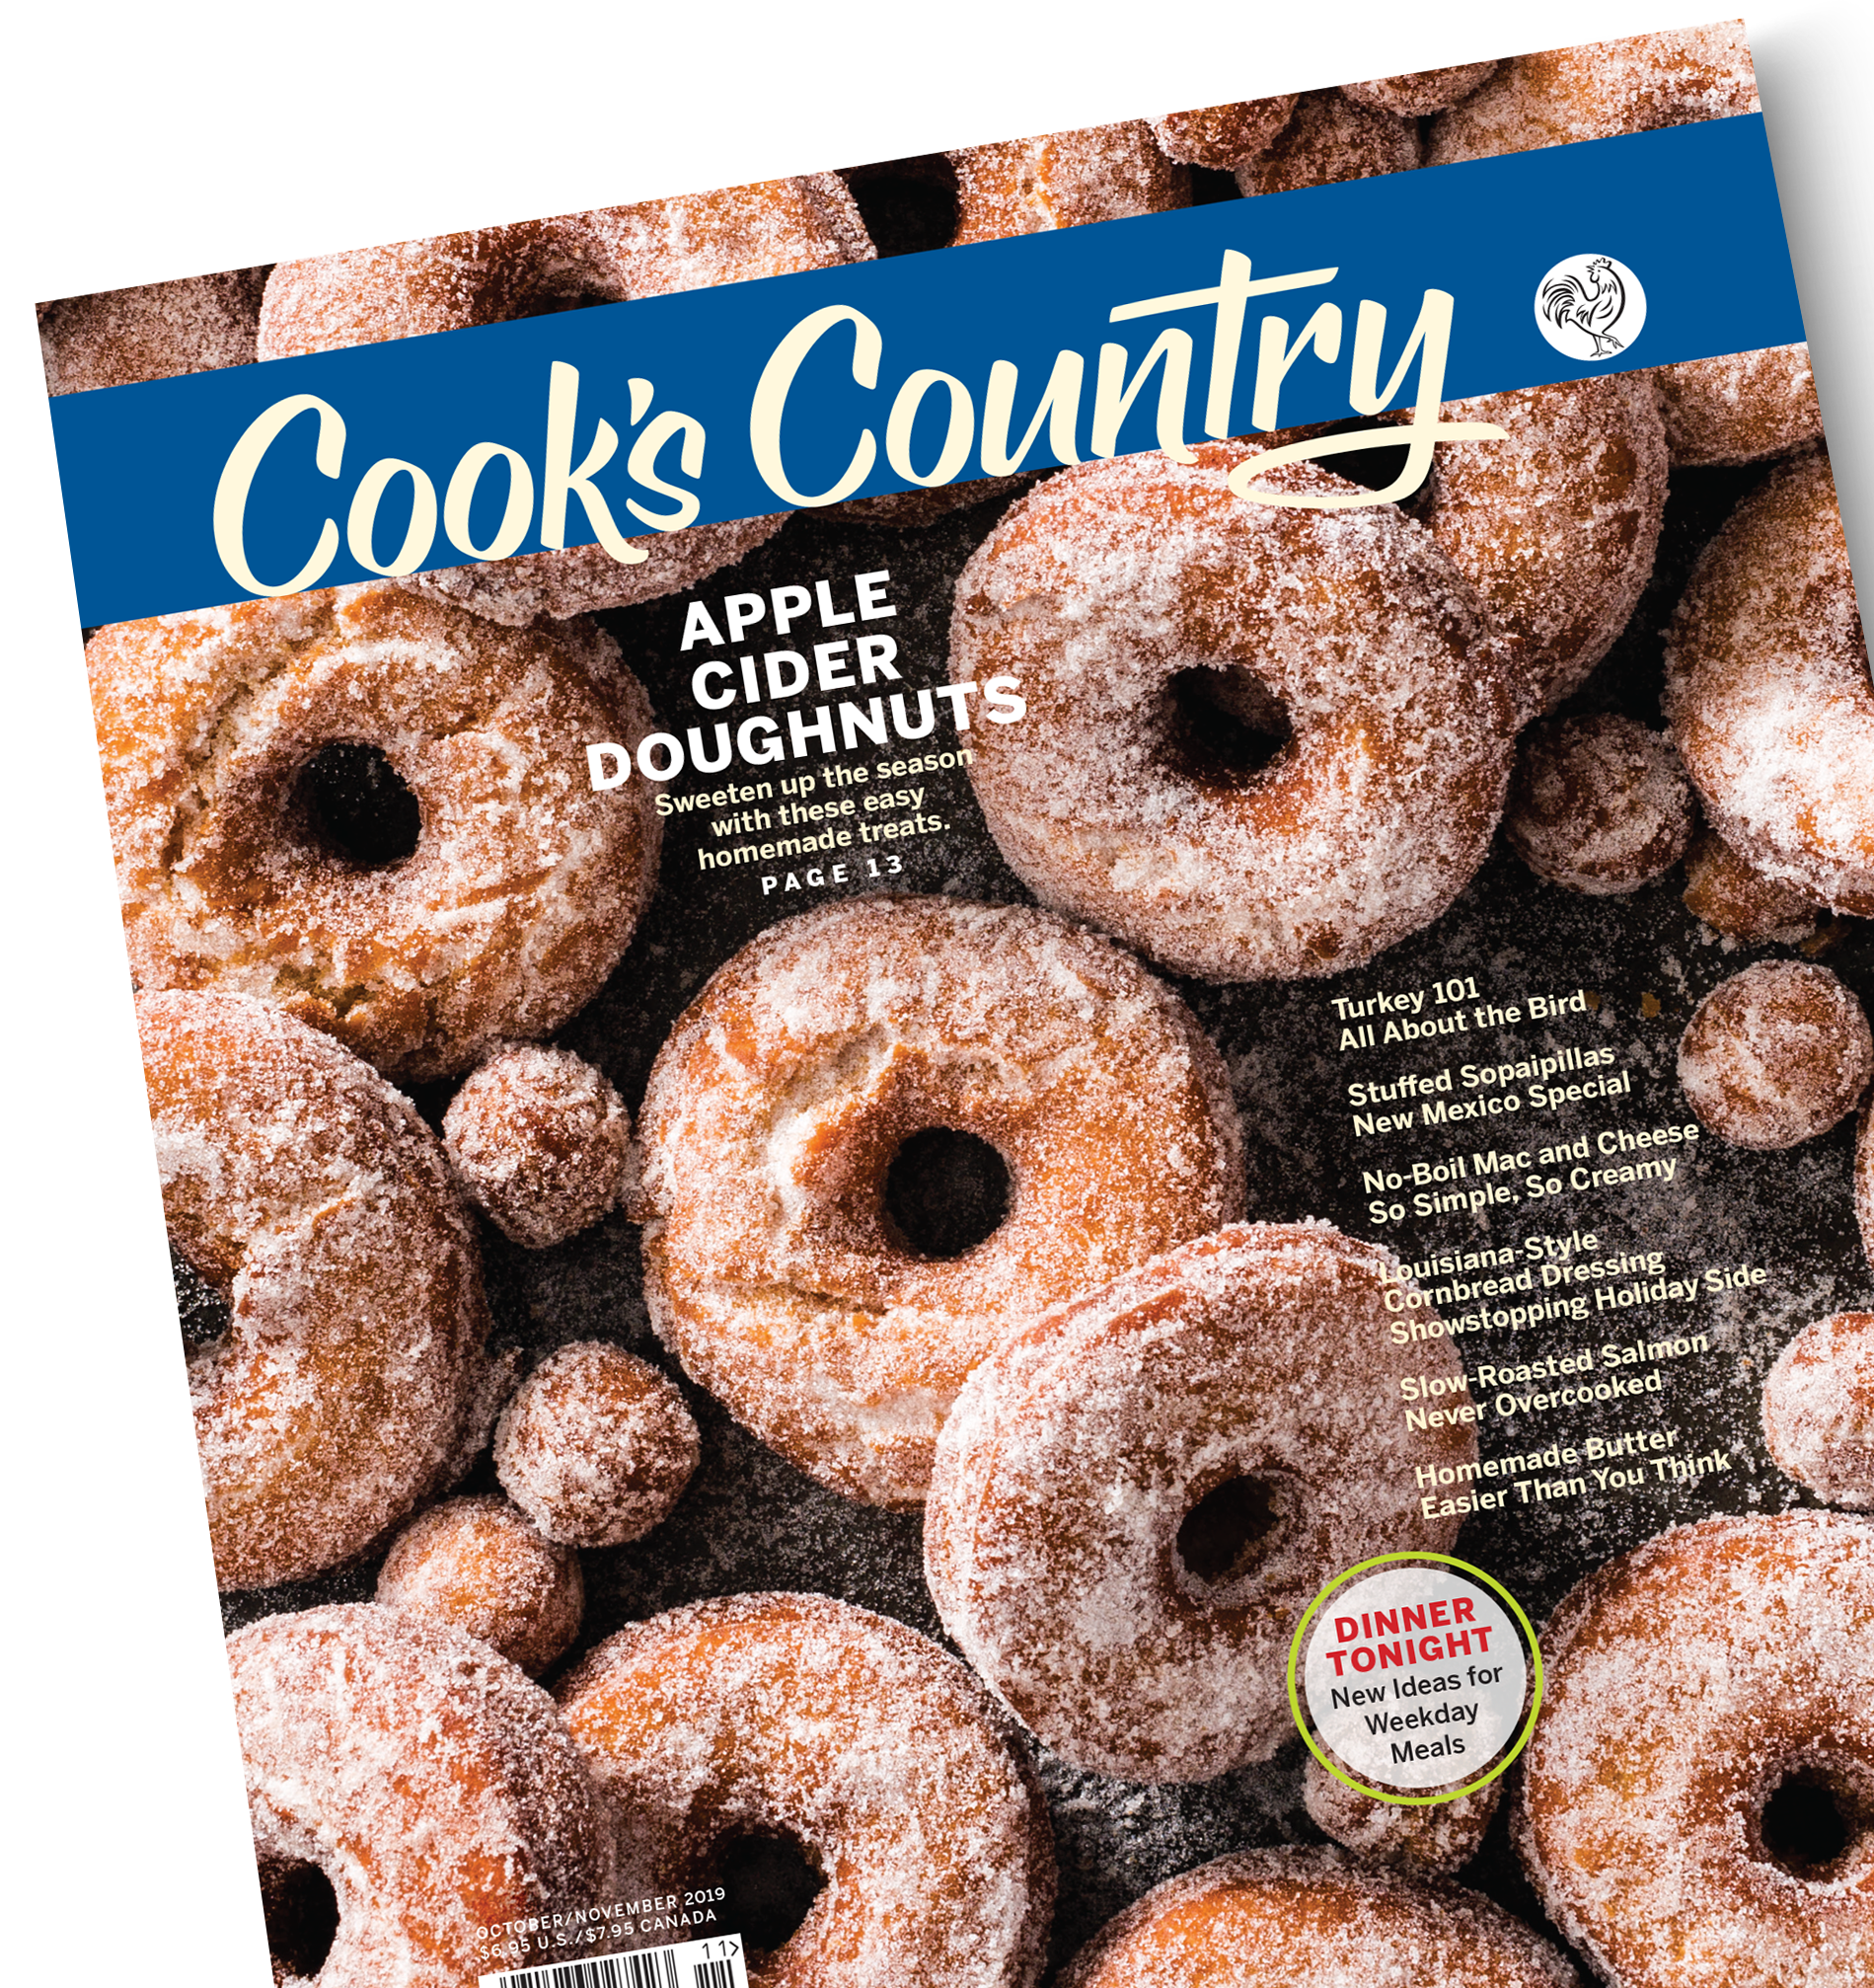 Cook's Country | How to Cook | Quick Recipes | TV Show Episodes